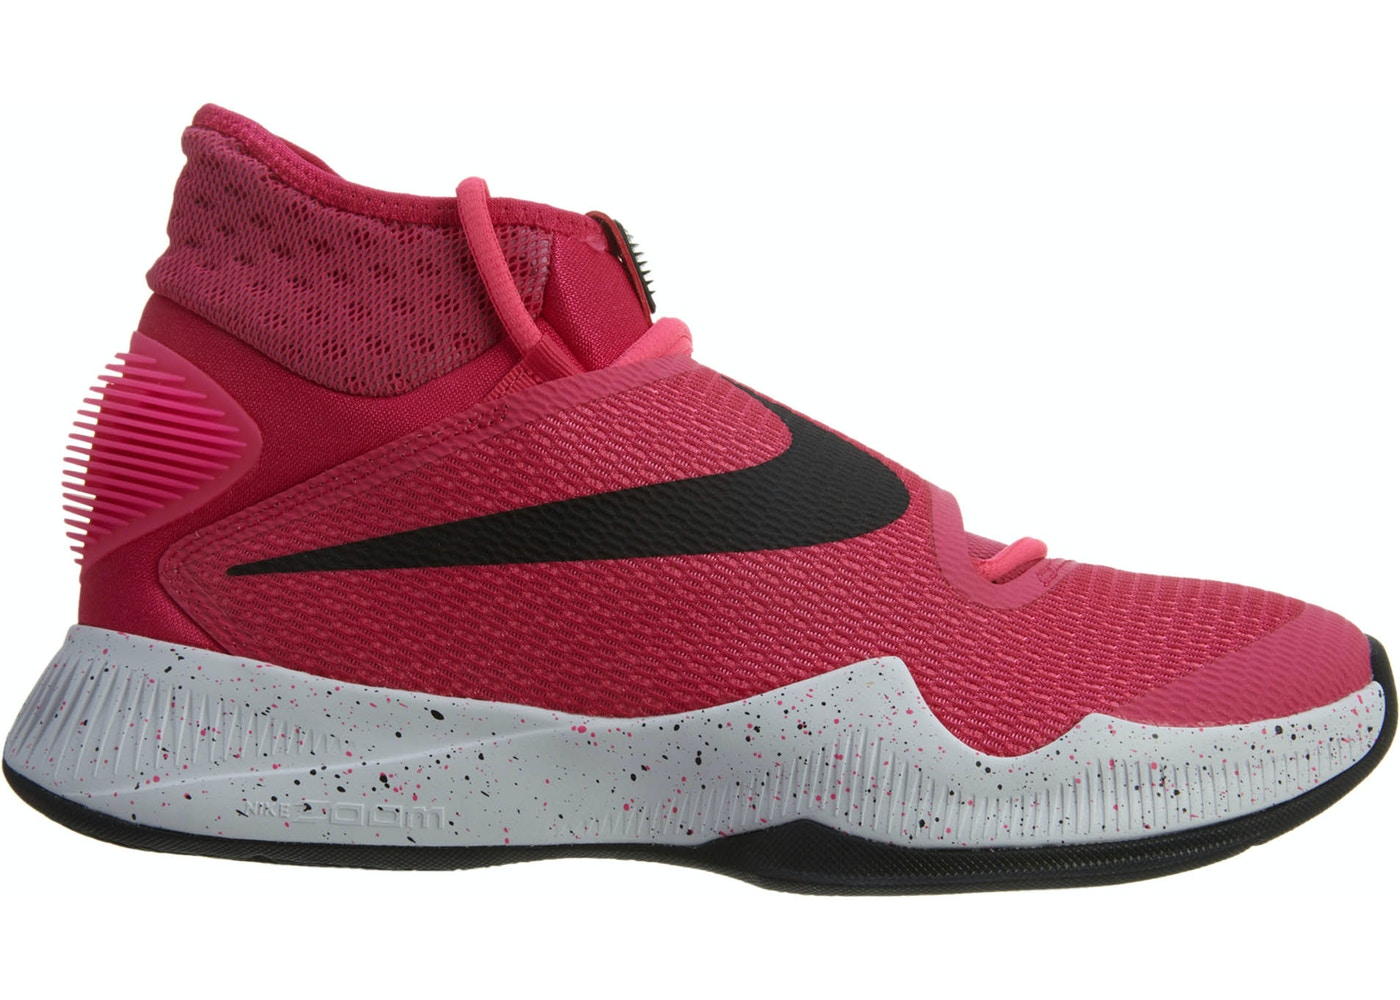 pretty nice 80f54 eb2f9 Sell. or Ask. Size --. View All Bids. Nike Zoom Hyperrev 2016 Pink Blast/ Black/White